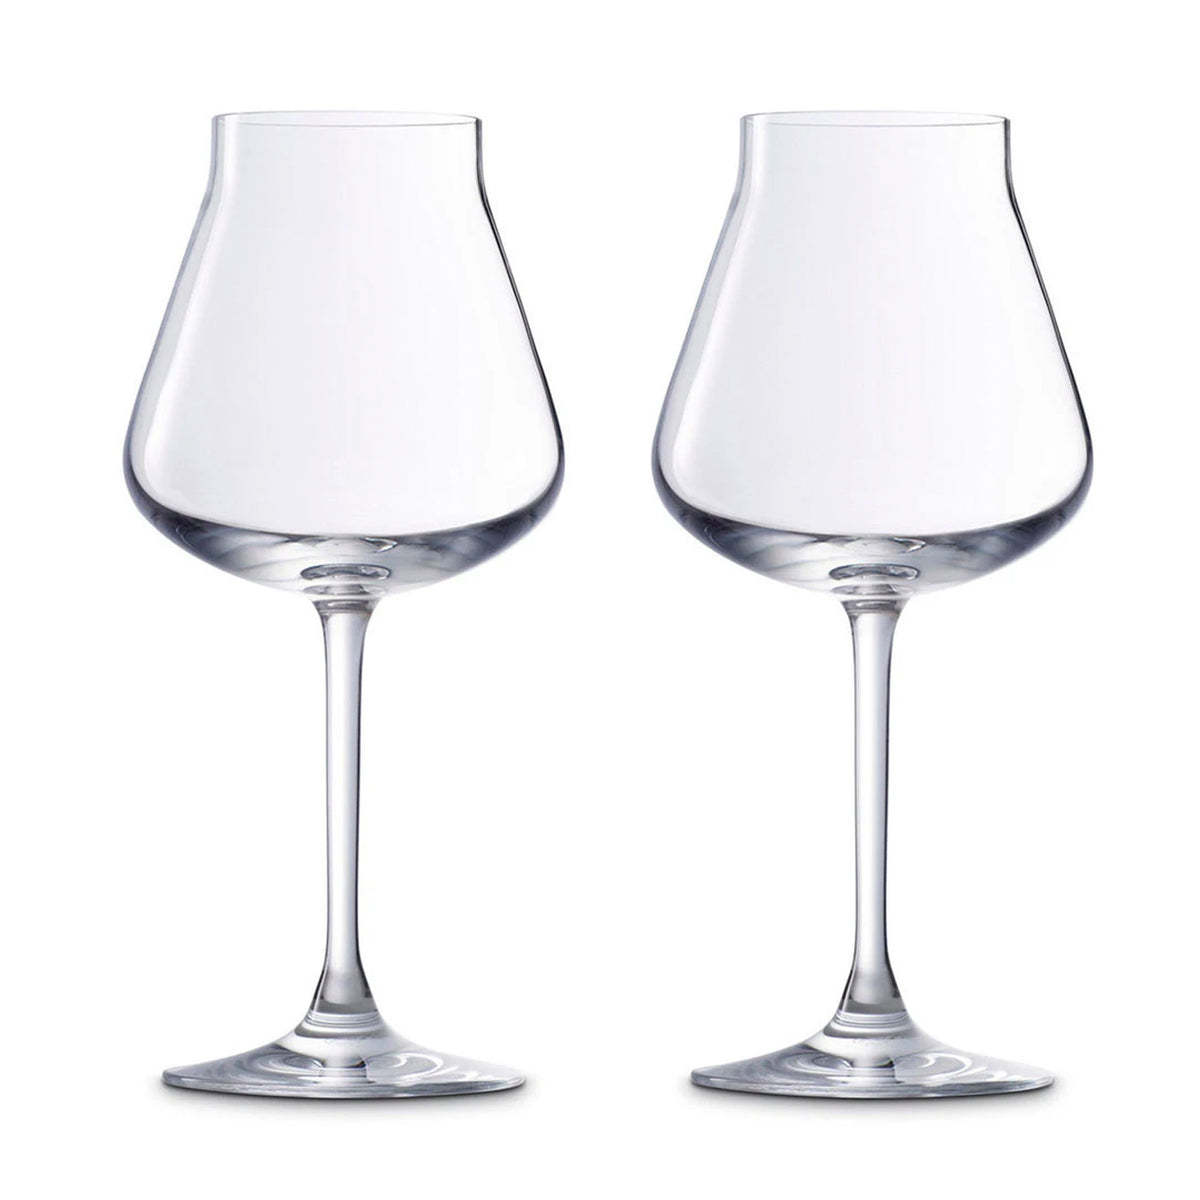 Chateau White Wine Glass, Set of 2